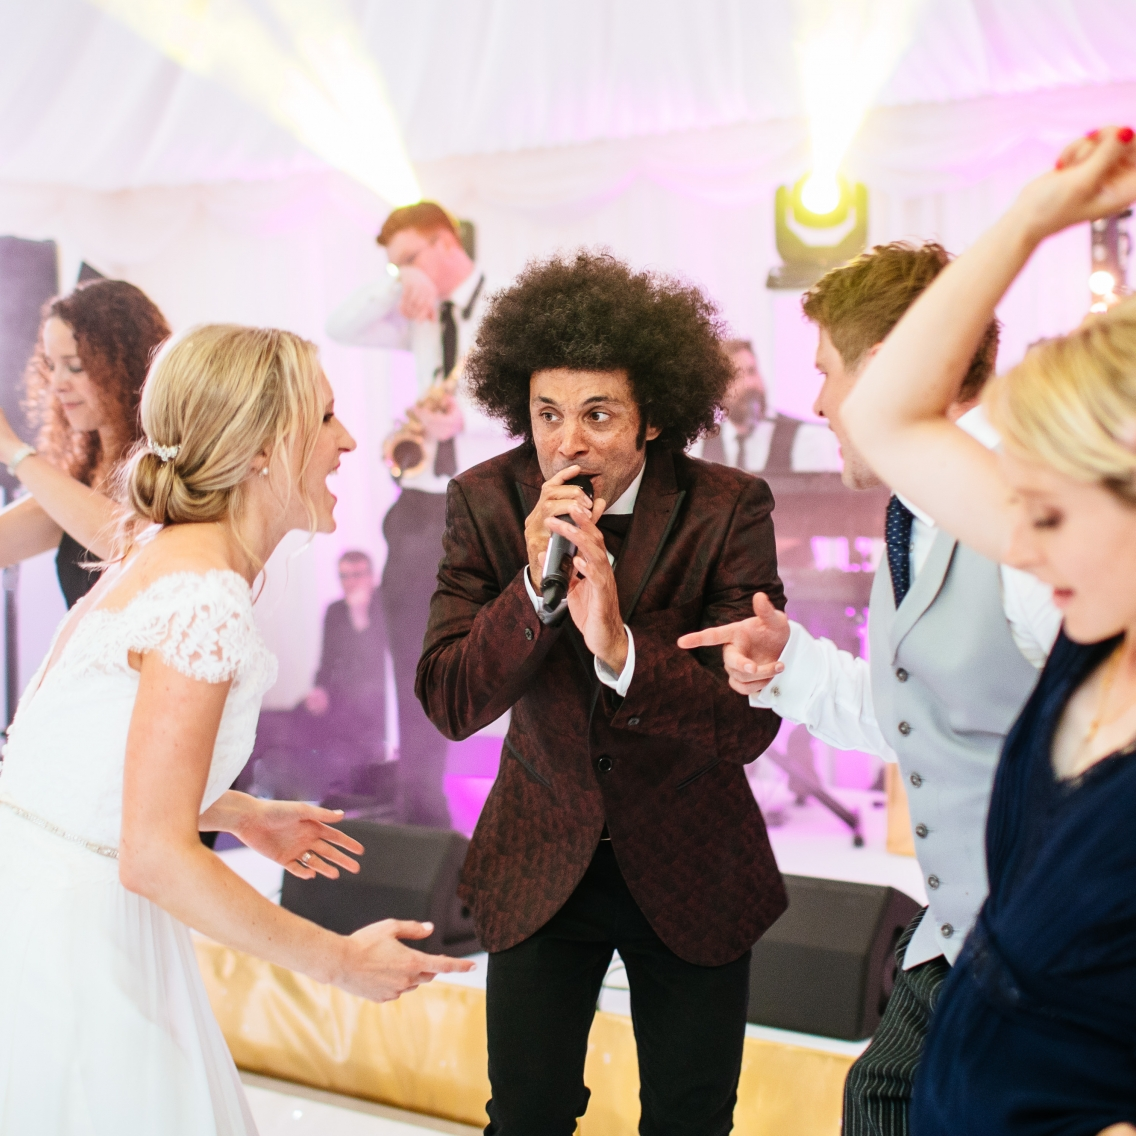 sing on the dance floor at party